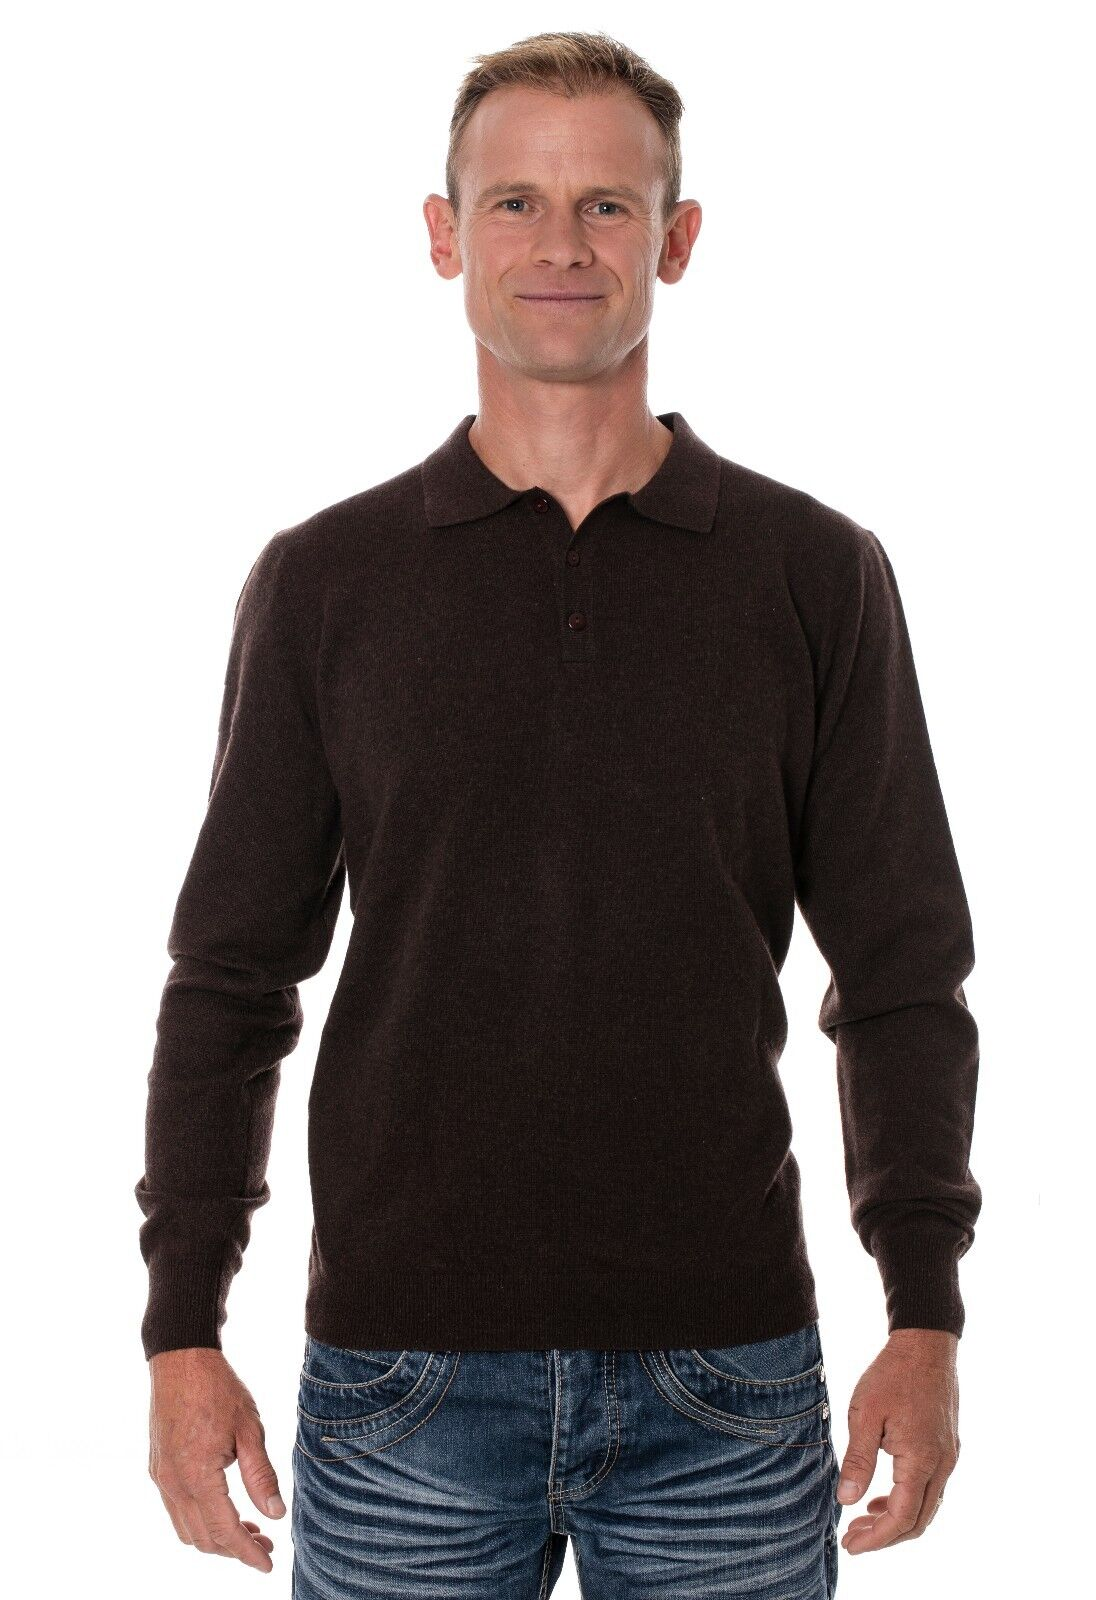 Ugholin Men's 100% Yak Wool Knit Polo Sweater, Brown